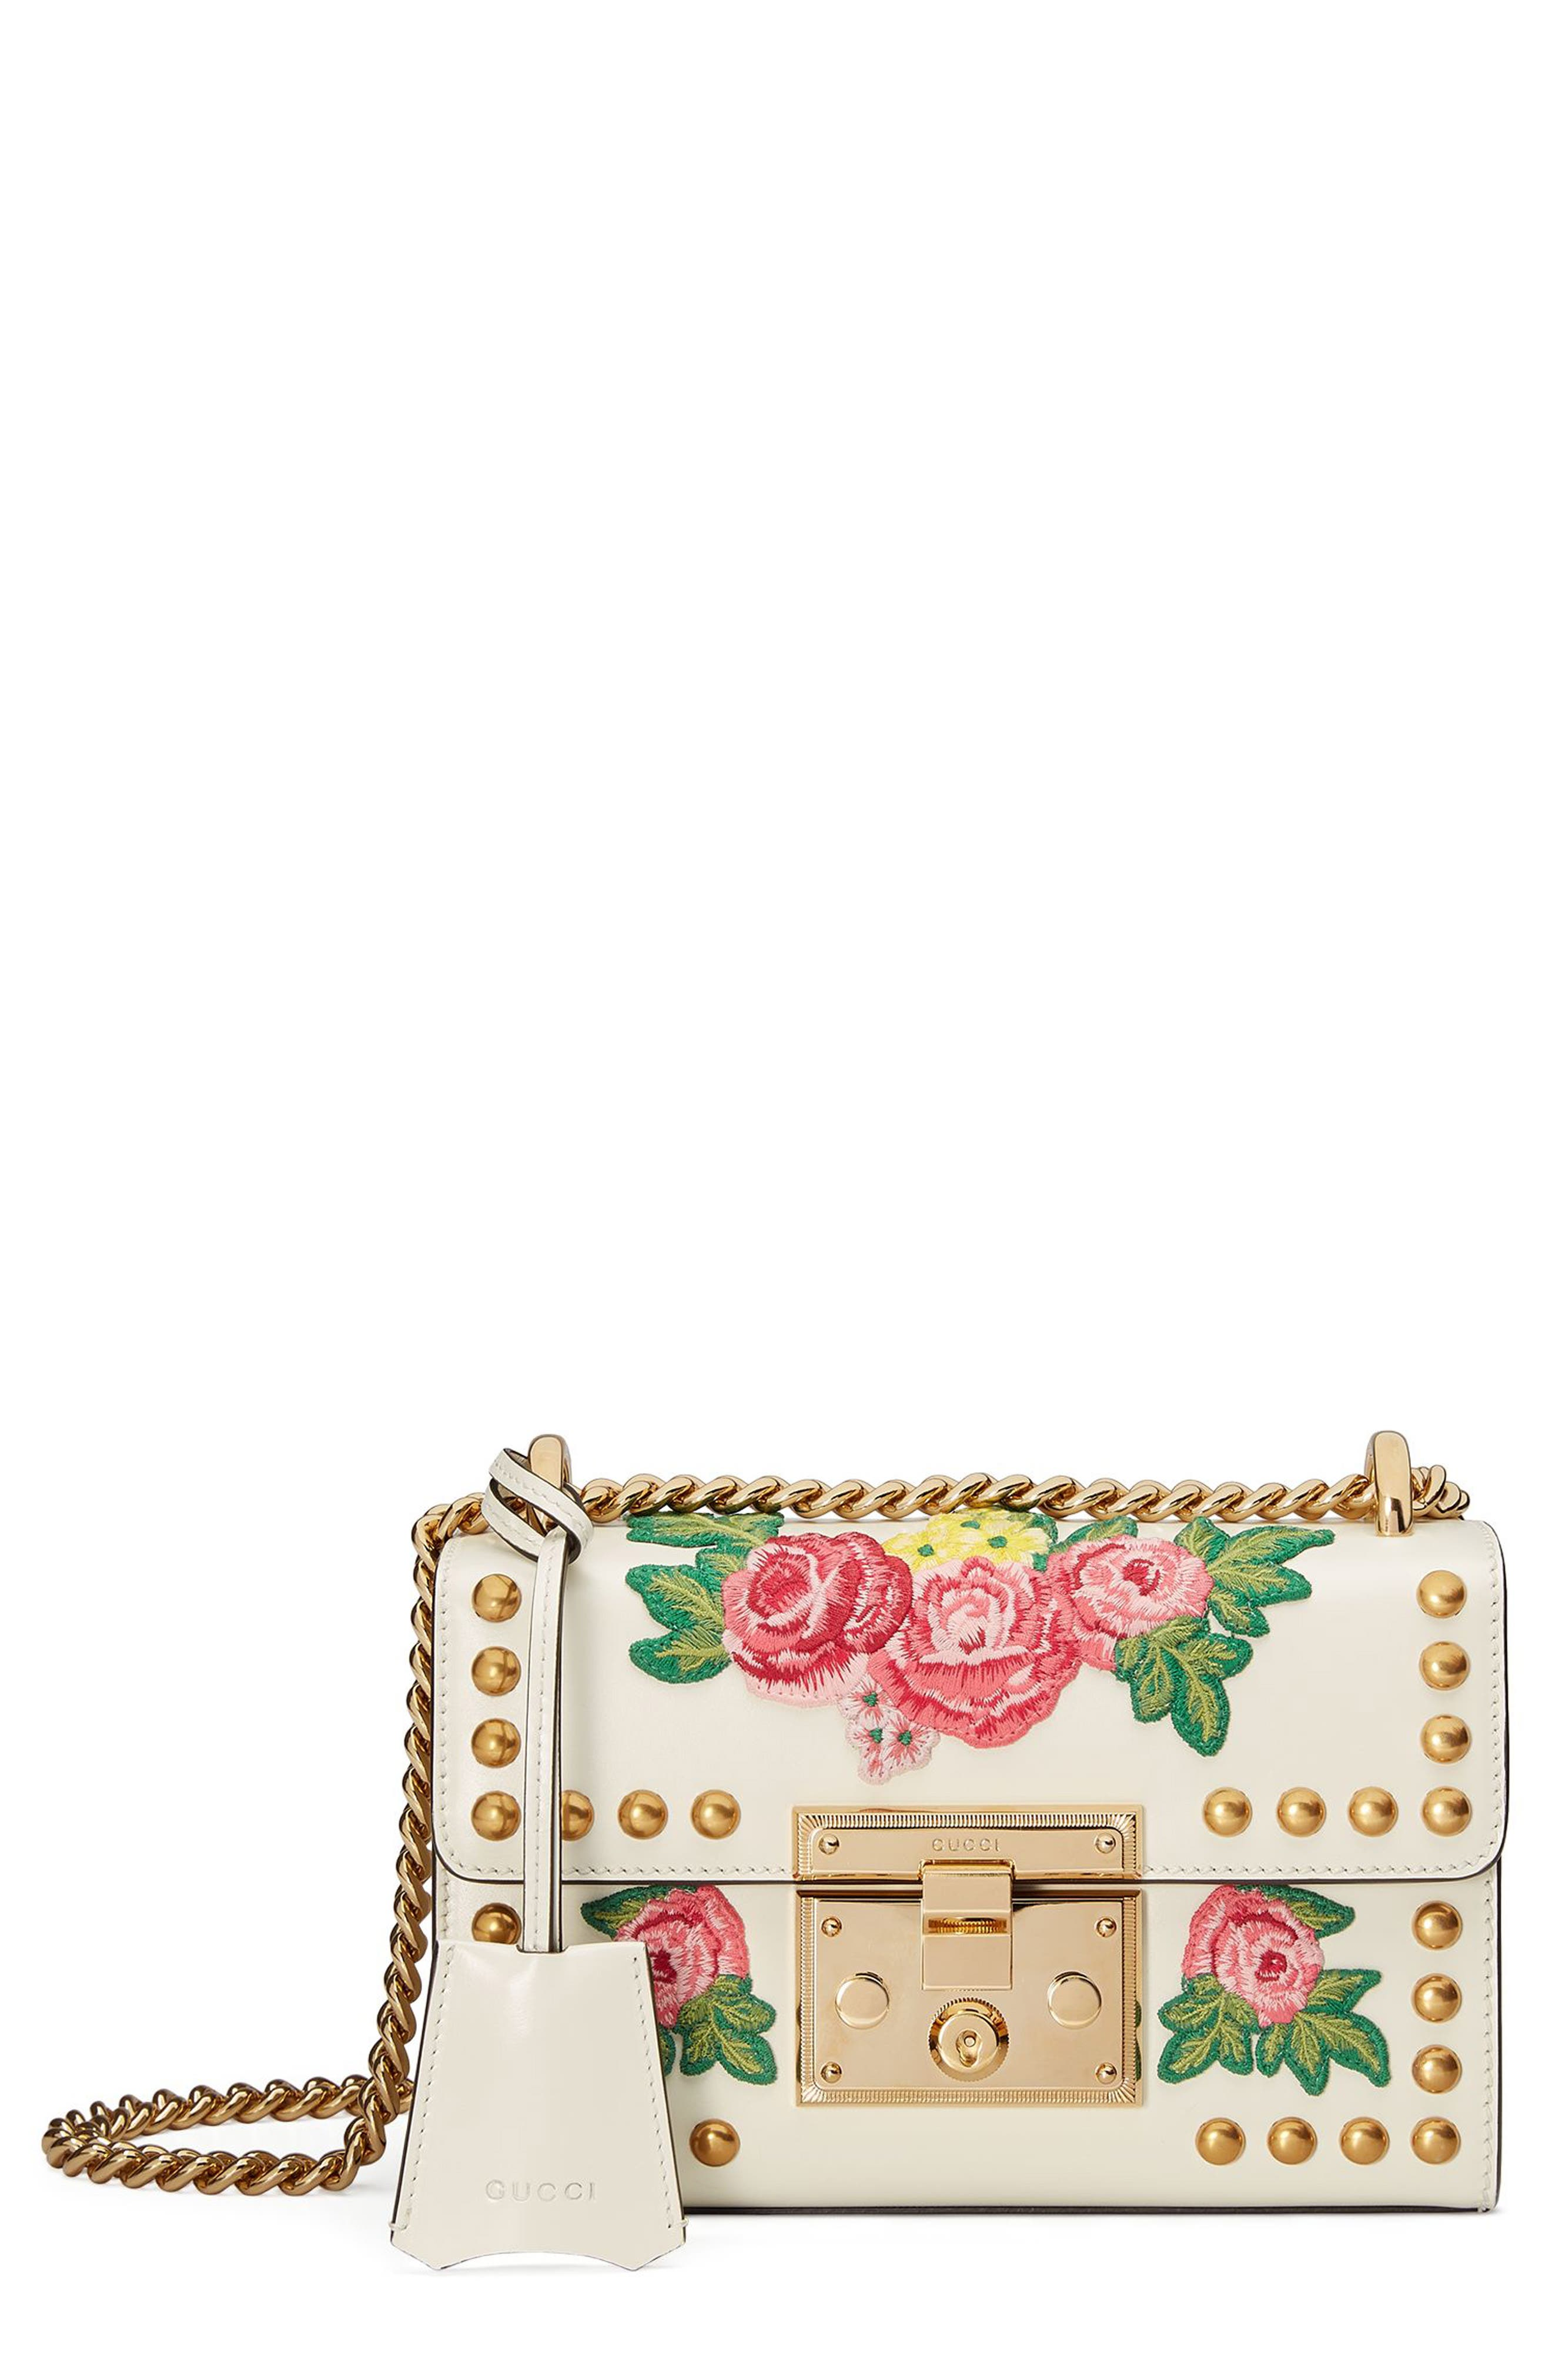 Main Image - Gucci Small Padlock Embroidered Leather Shoulder Bag